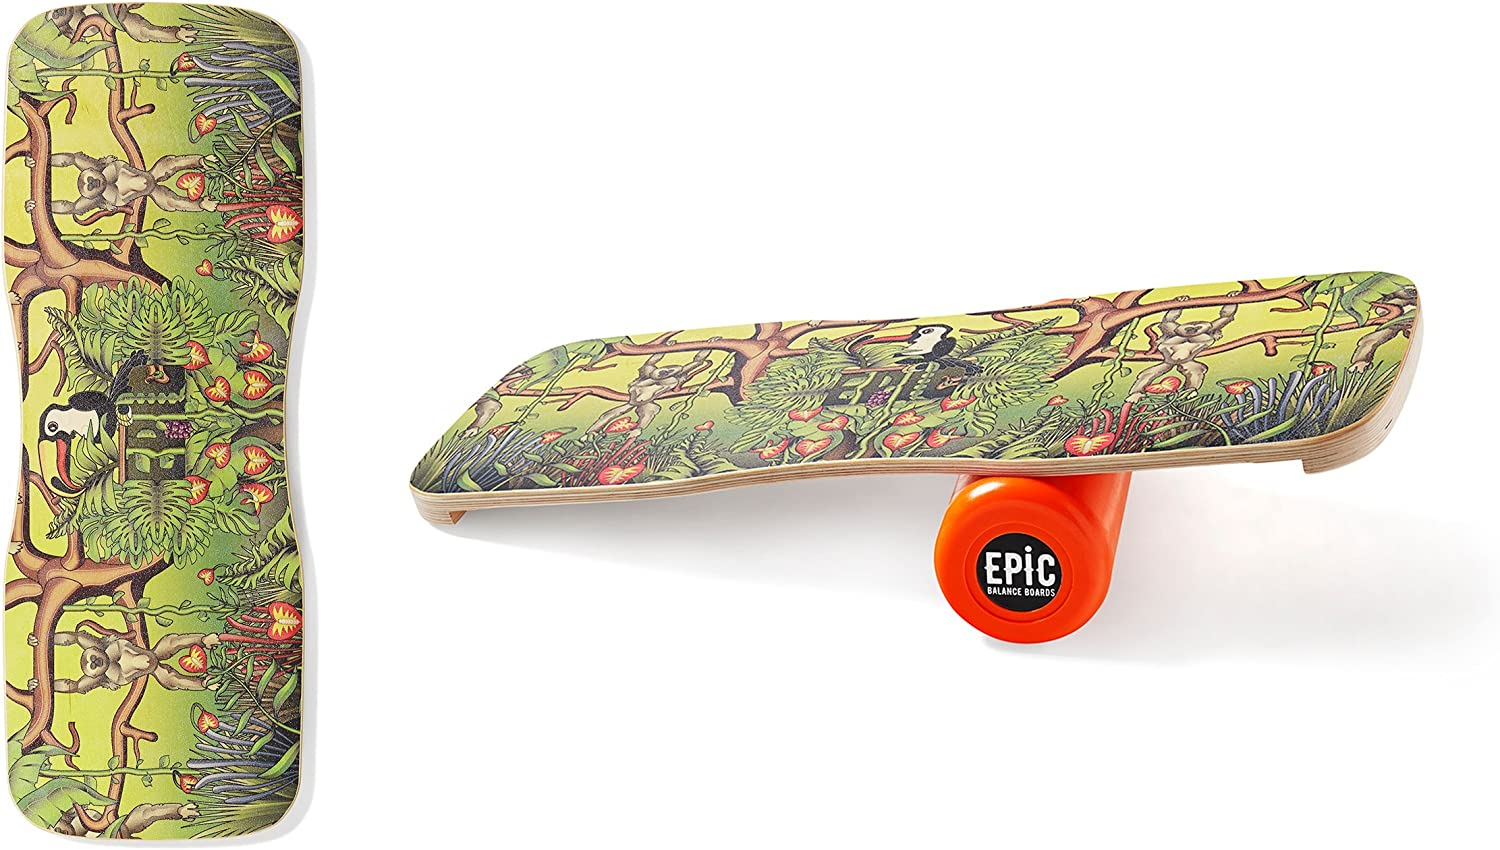 Epic Jungle Balance Board - Balance Trainer - Epic Balanceboards